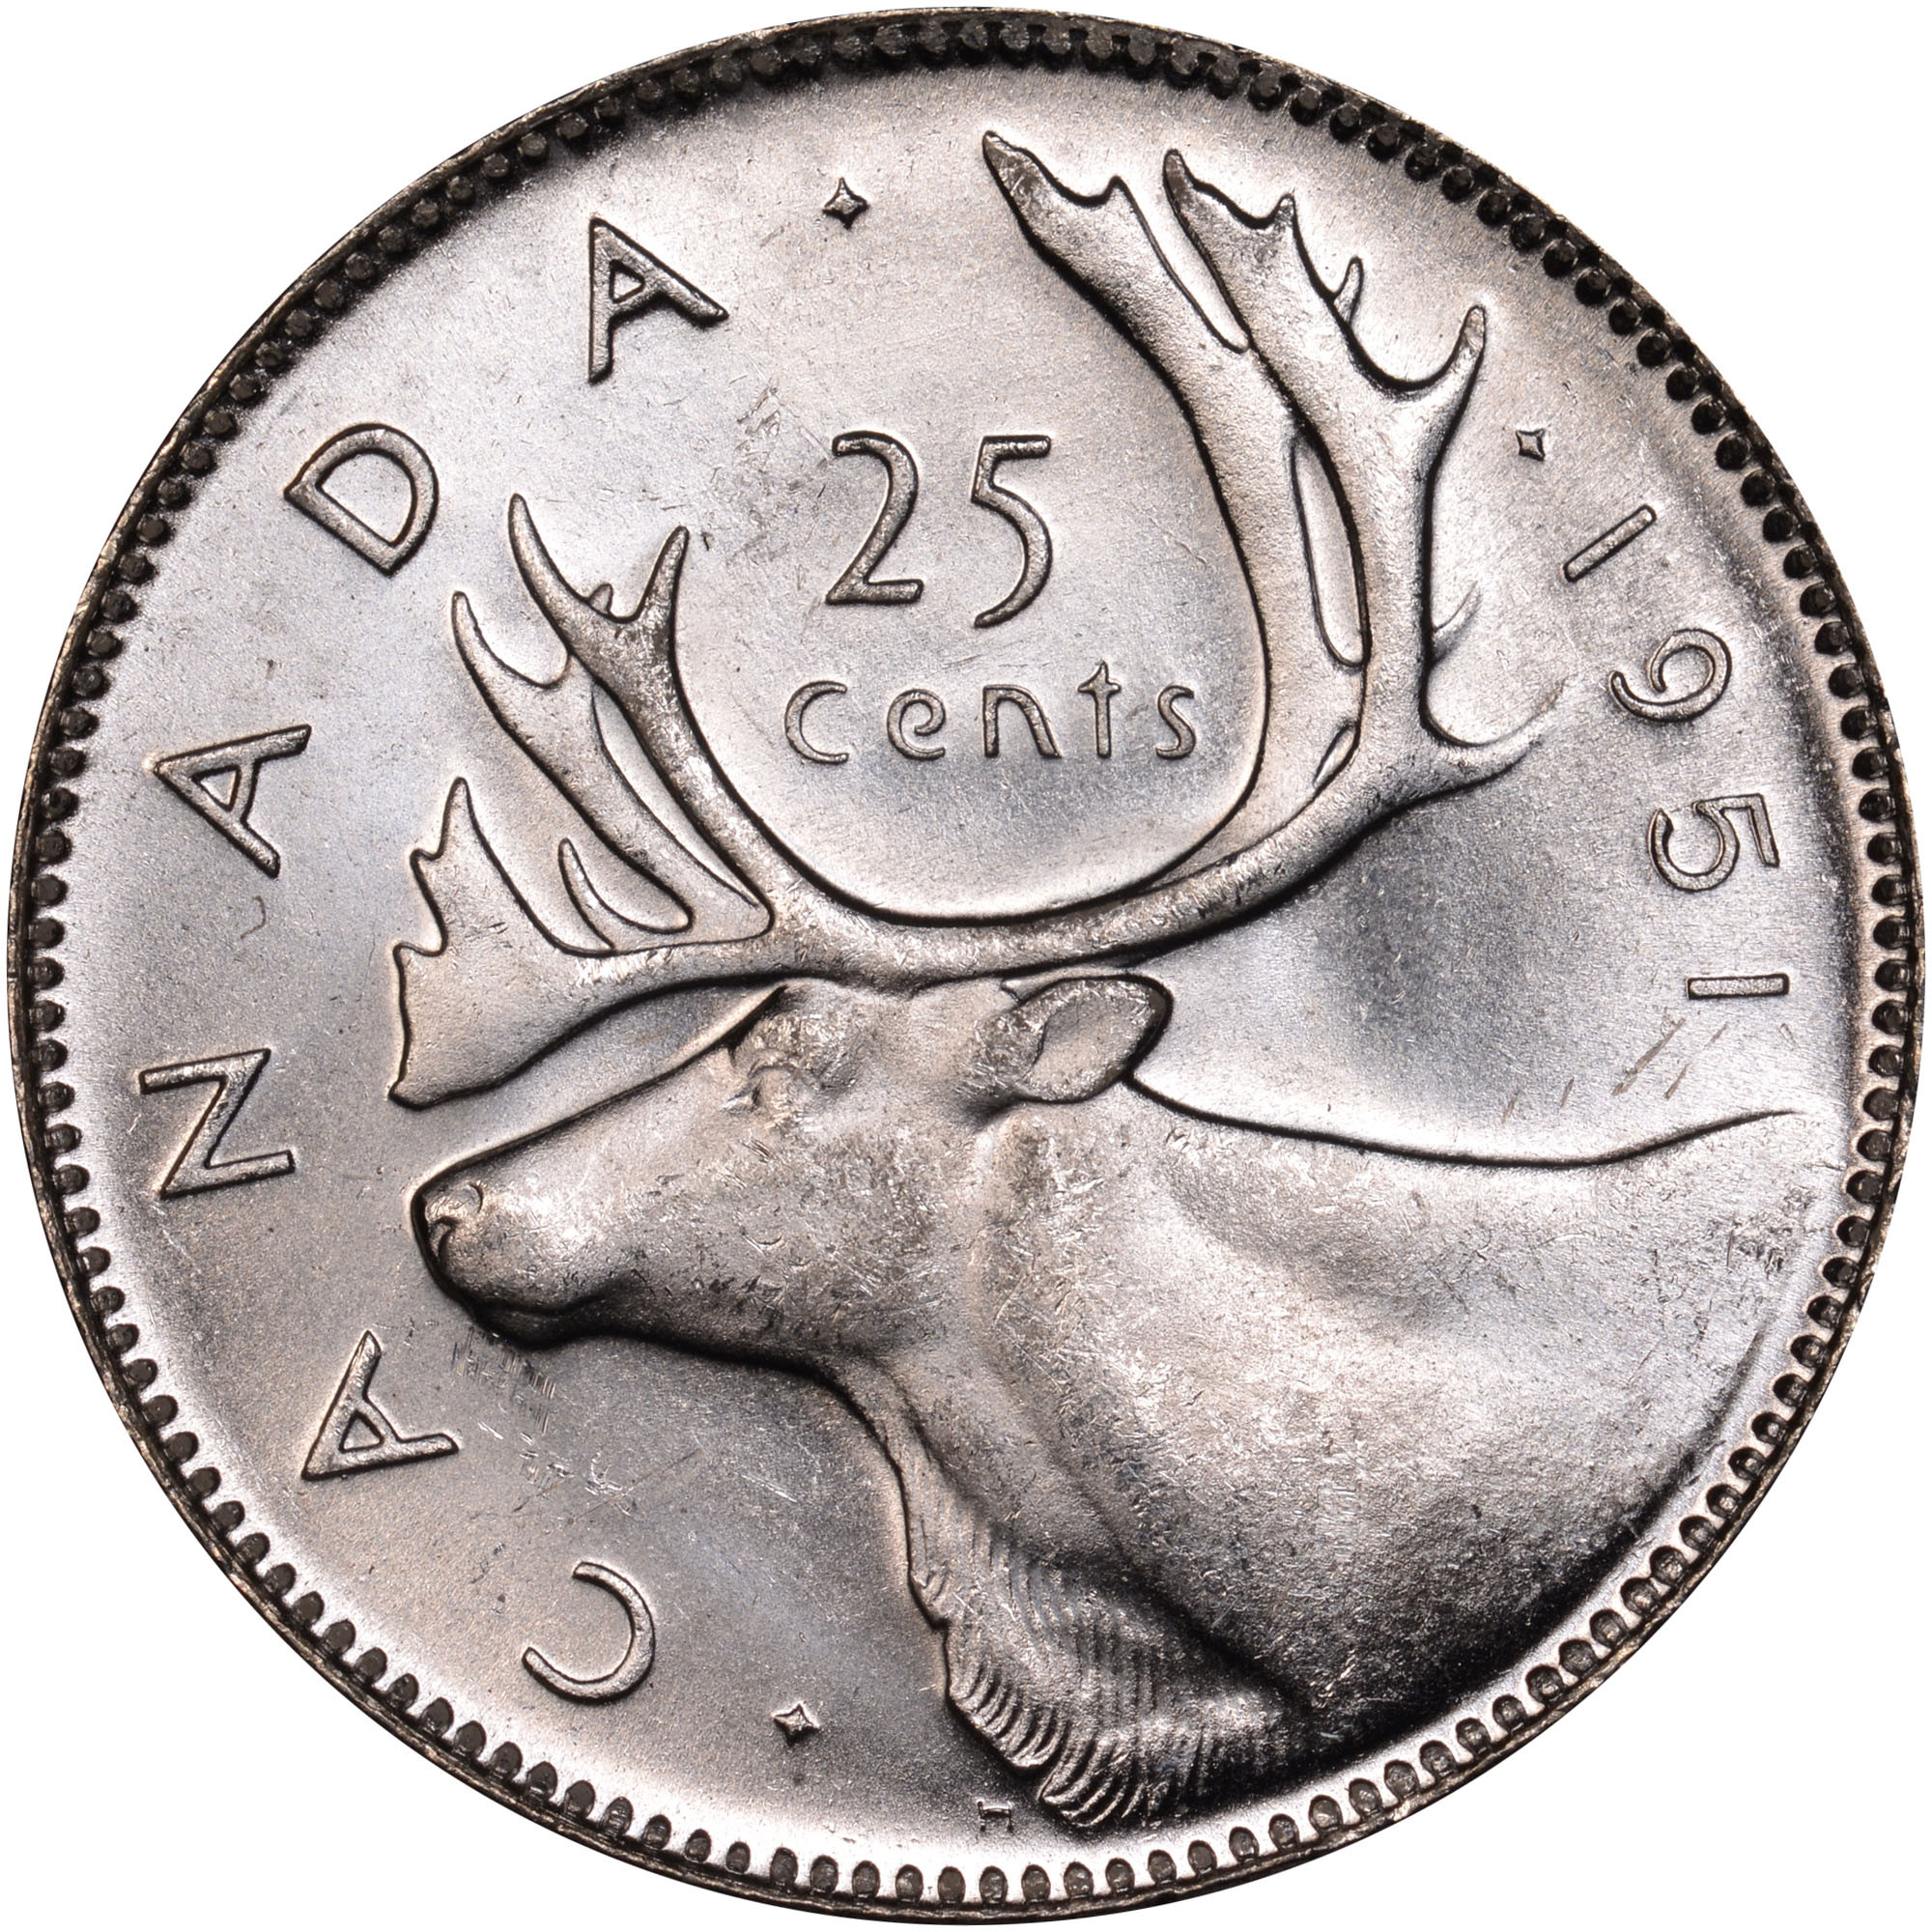 Elegant Canadian Silver Coins Price Of Silver Quarters Of Adorable 42 Ideas Price Of Silver Quarters